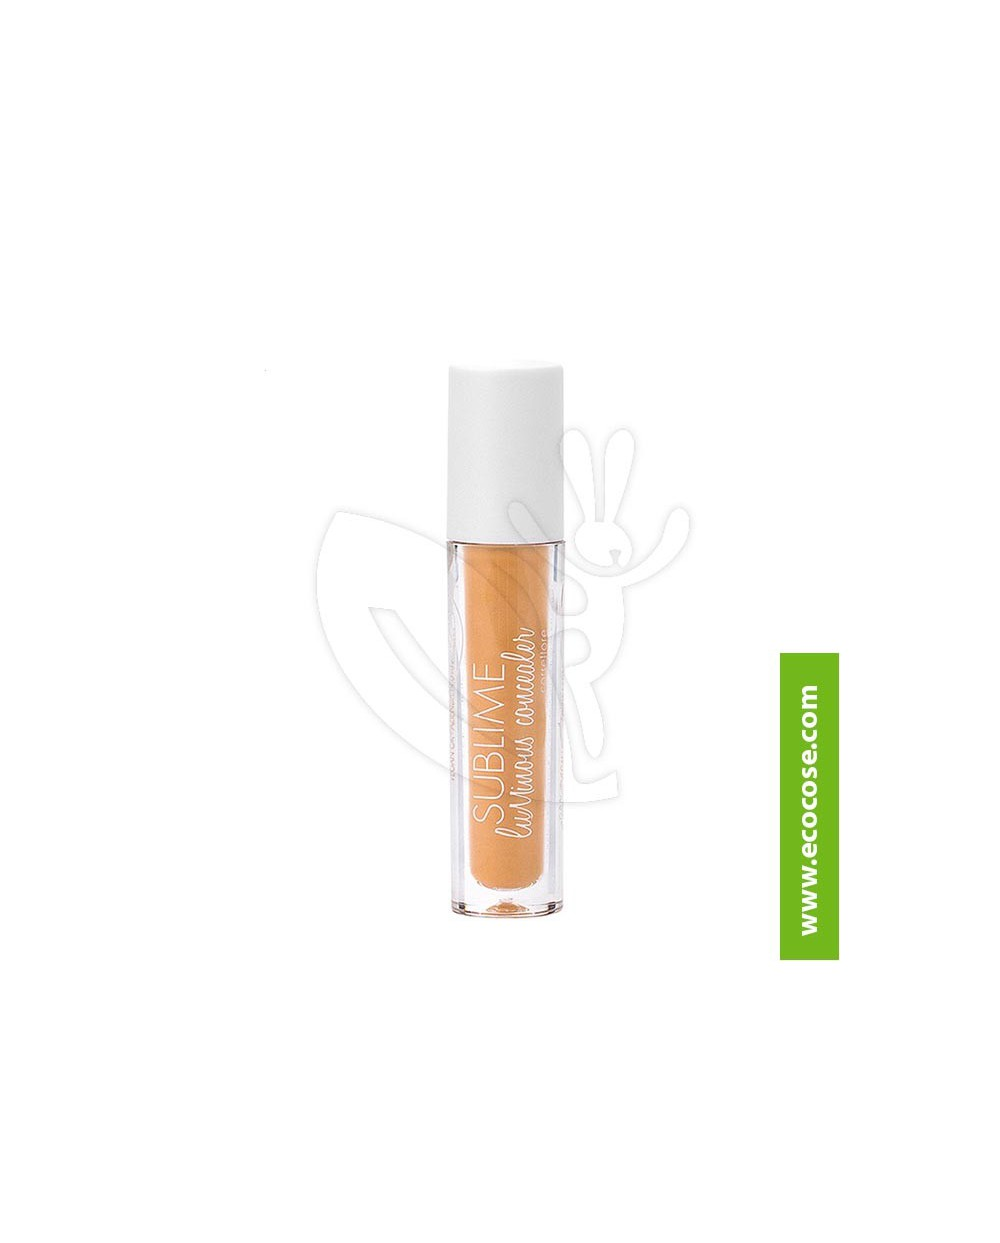 PuroBIO Cosmetics - Luminous Concealer 03